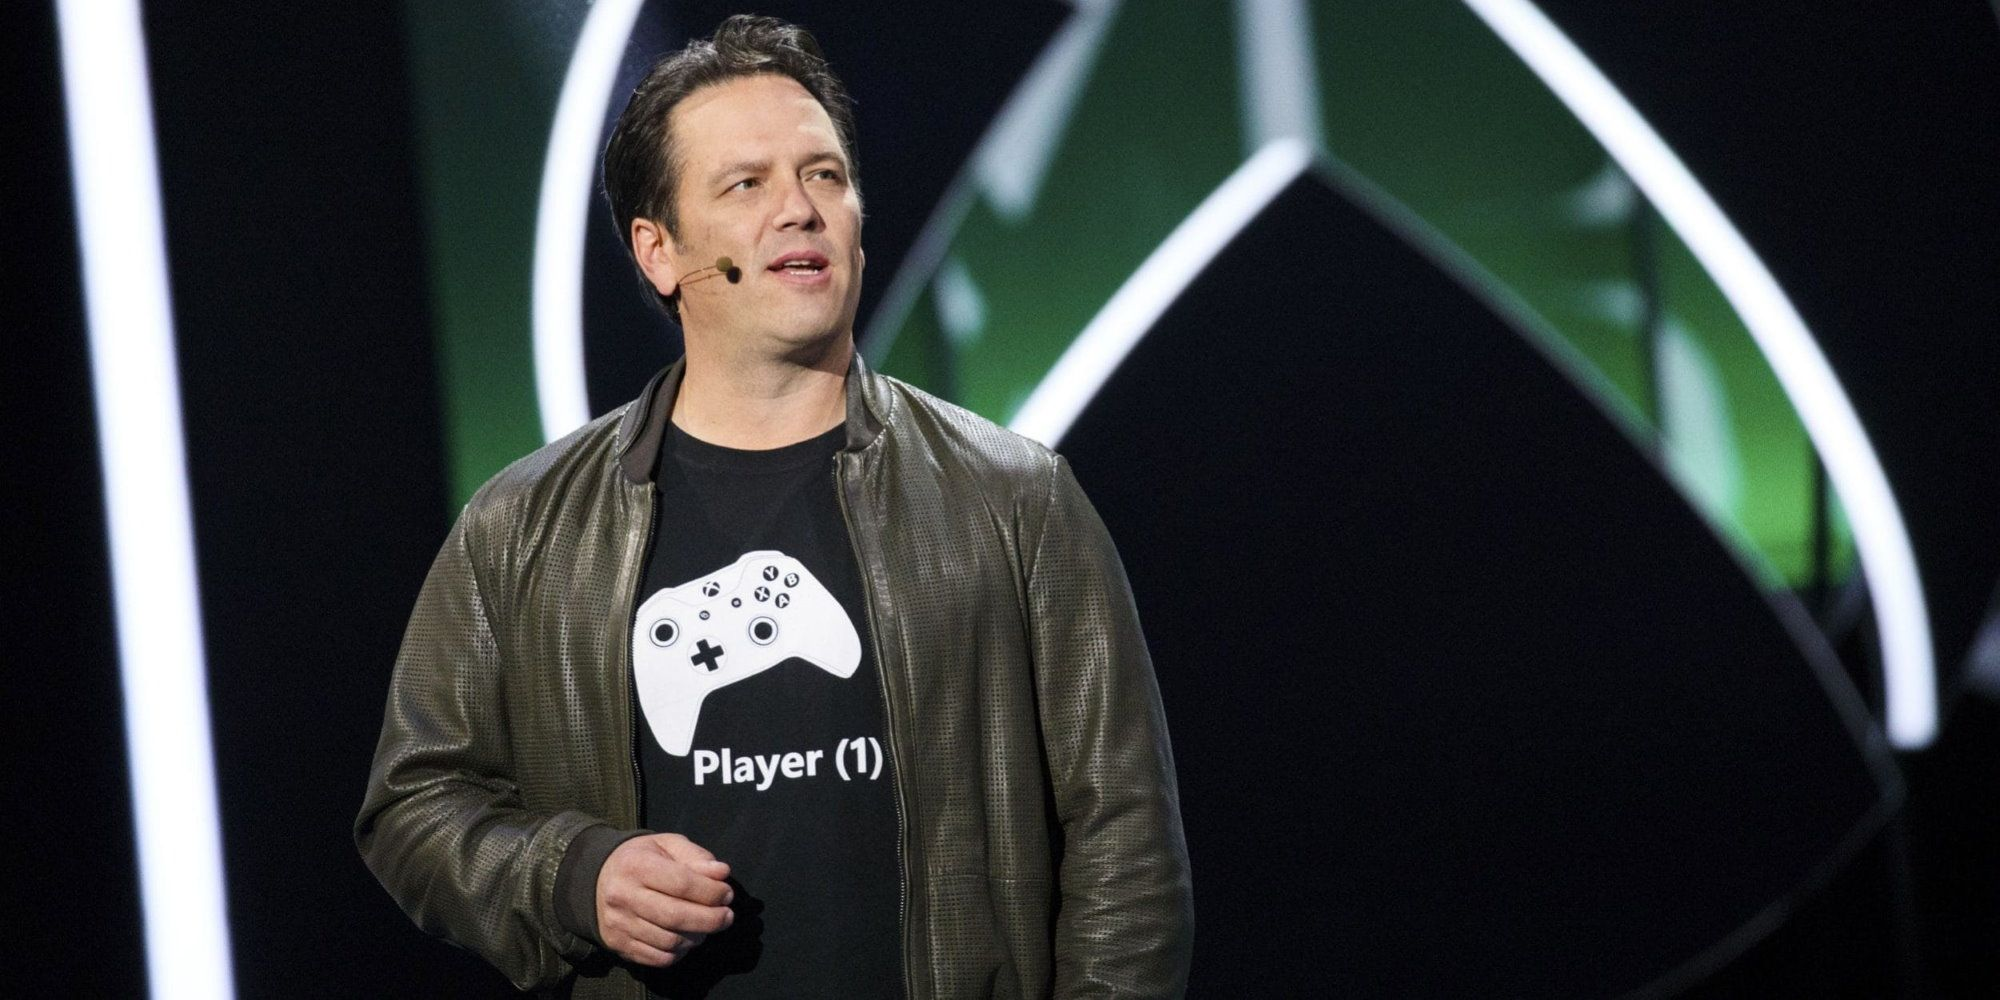 Xbox CEO, Phil Spencer hopes industry will save old games